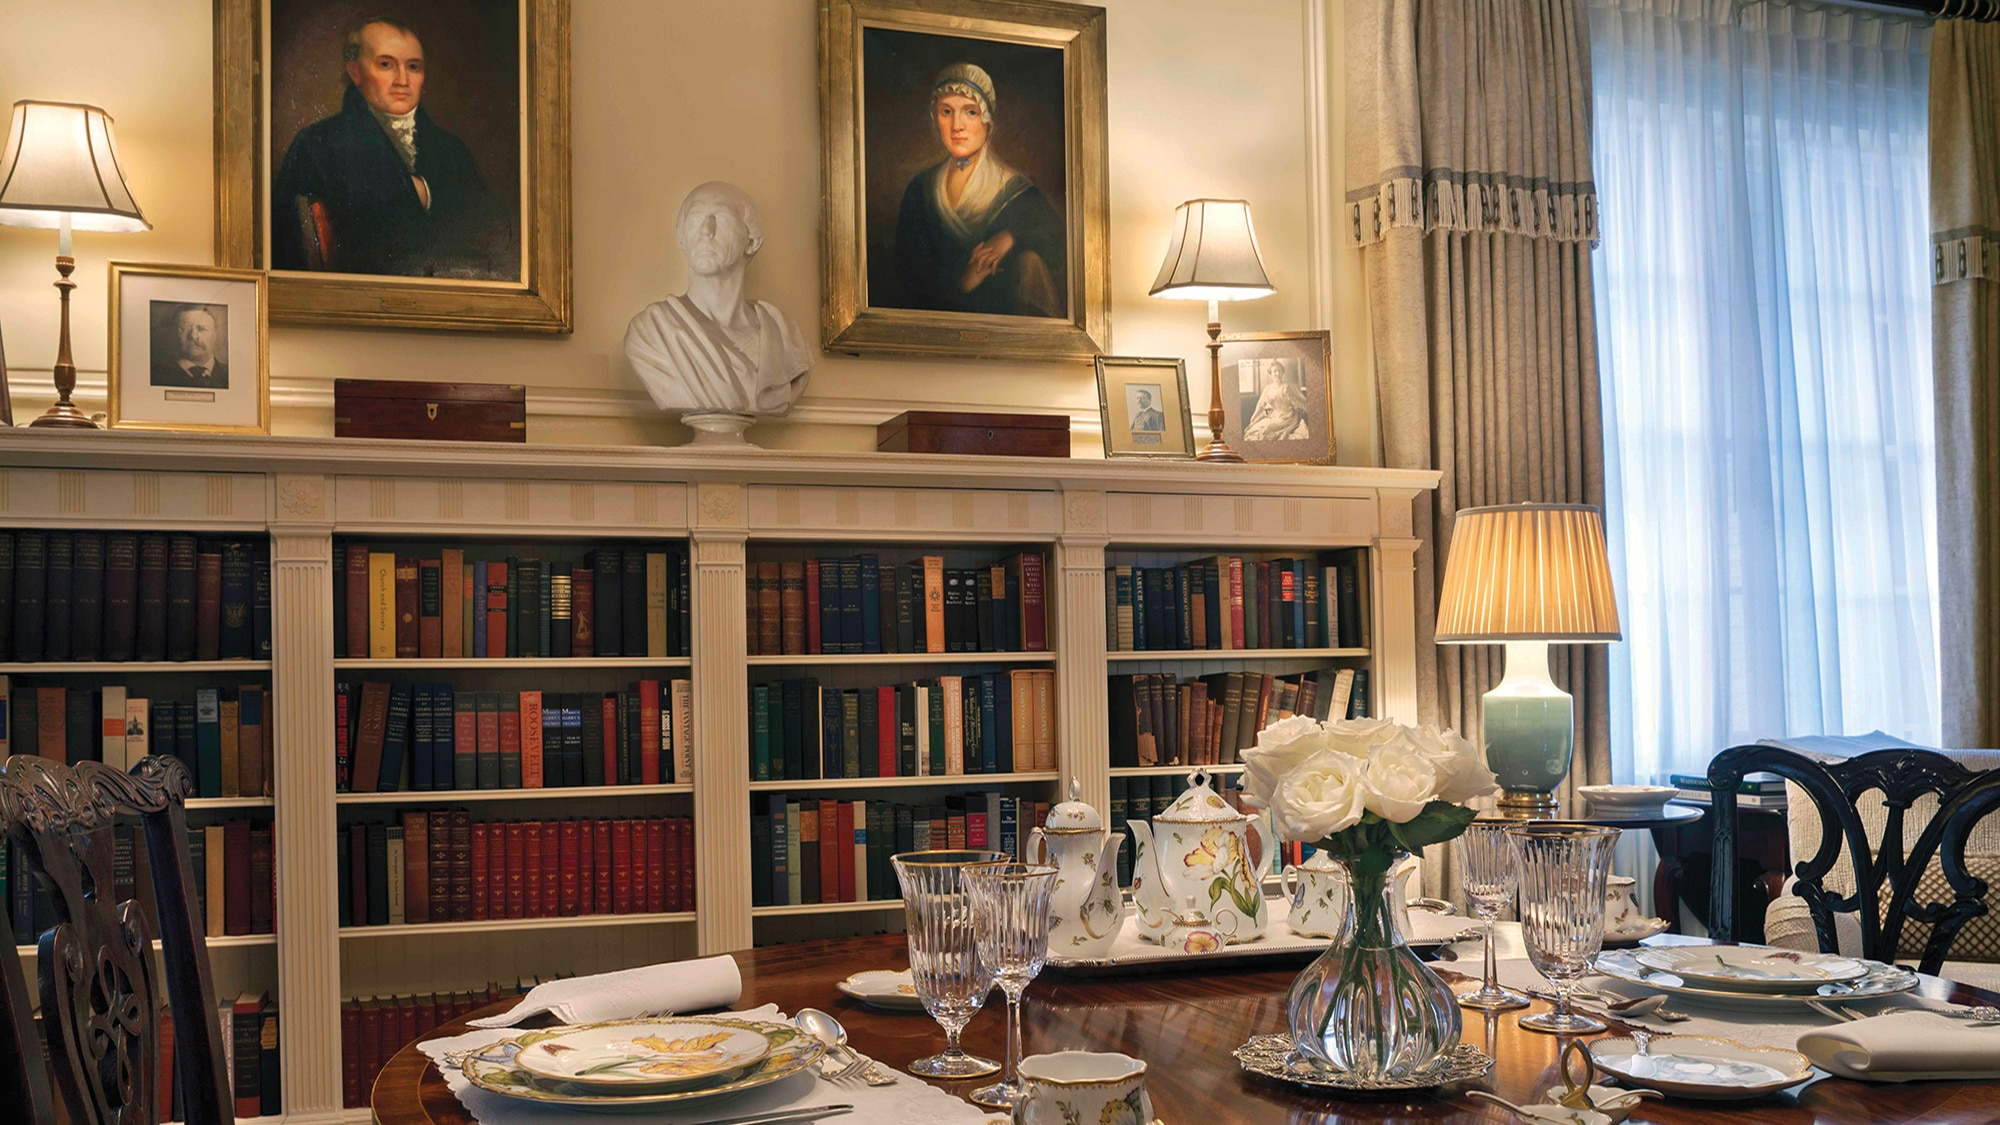 Photo showing the Blair House Library, an elegant room that houses over 1,500 books on the history and culture of the United States and other countries. [Department of State]